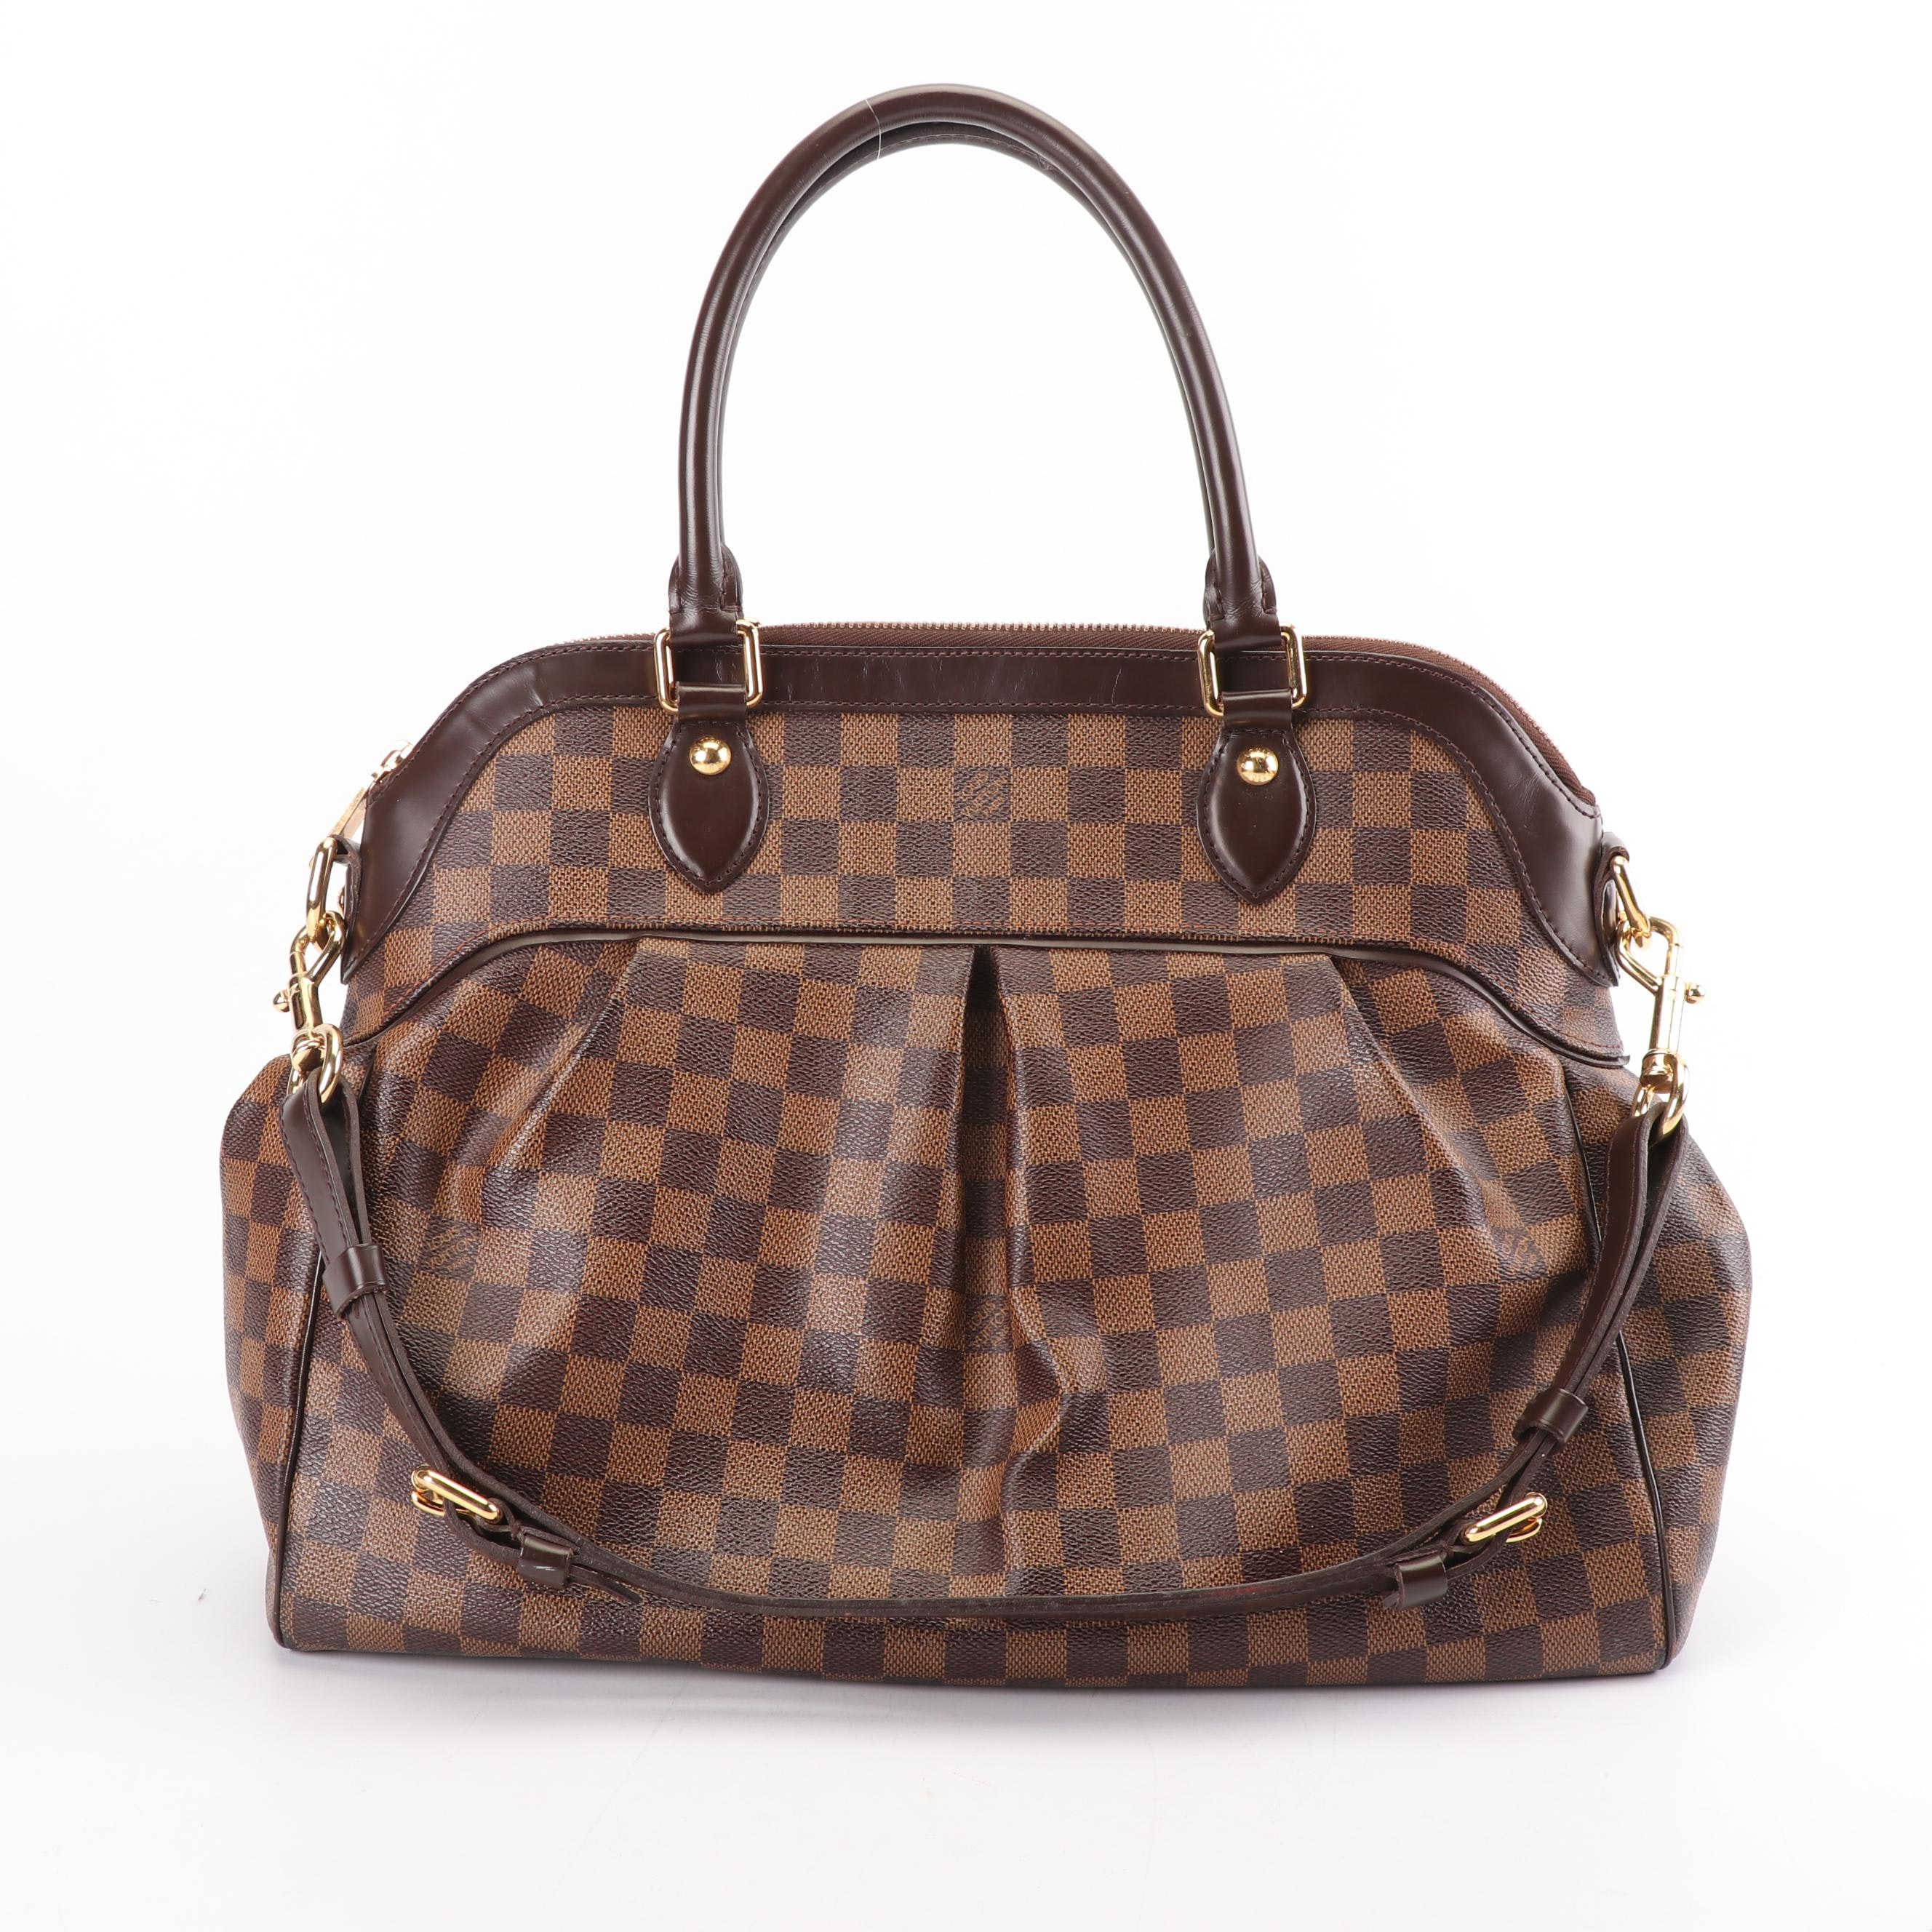 Louis Vuitton Paris Damier Ebene Canvas Trevi GM Handbag, 2009